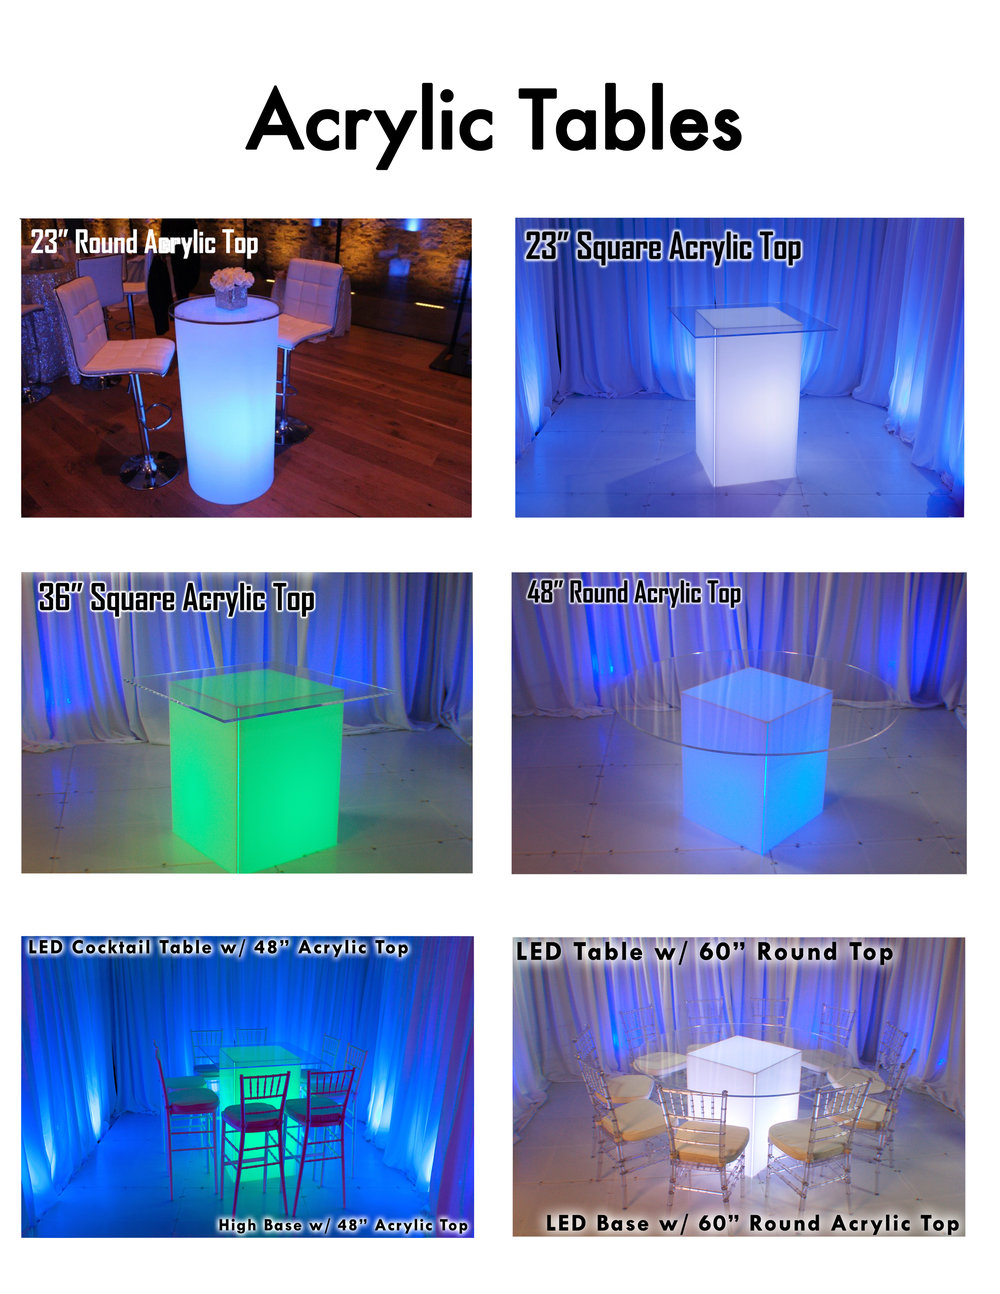 025-P24_Acrylic Tables.jpg